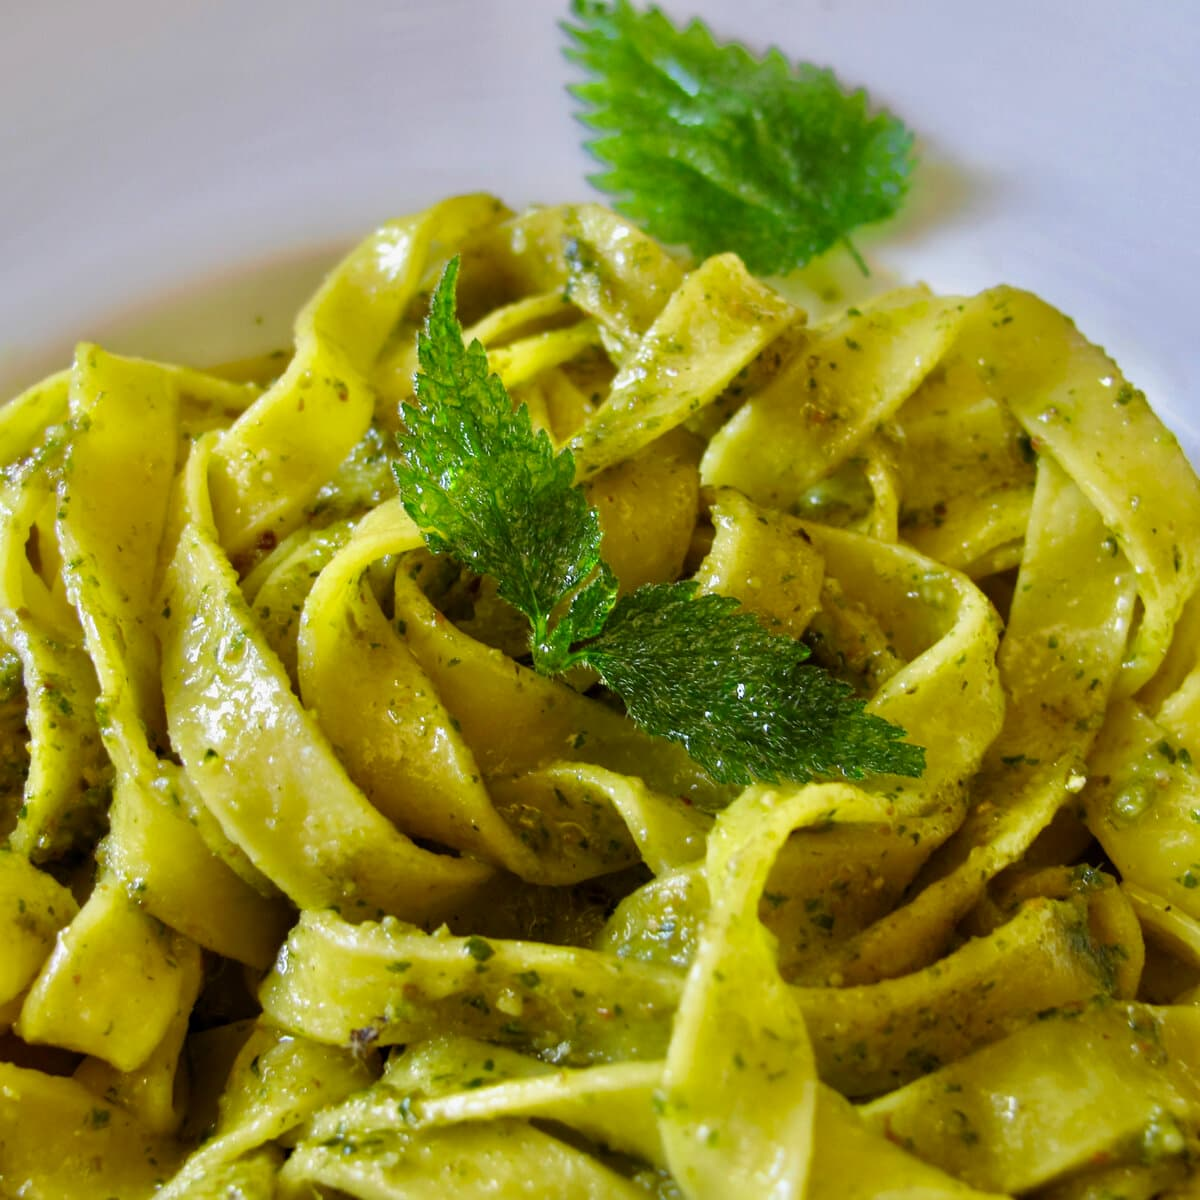 nettle pesto tossed in pasta with fried nettle leaves